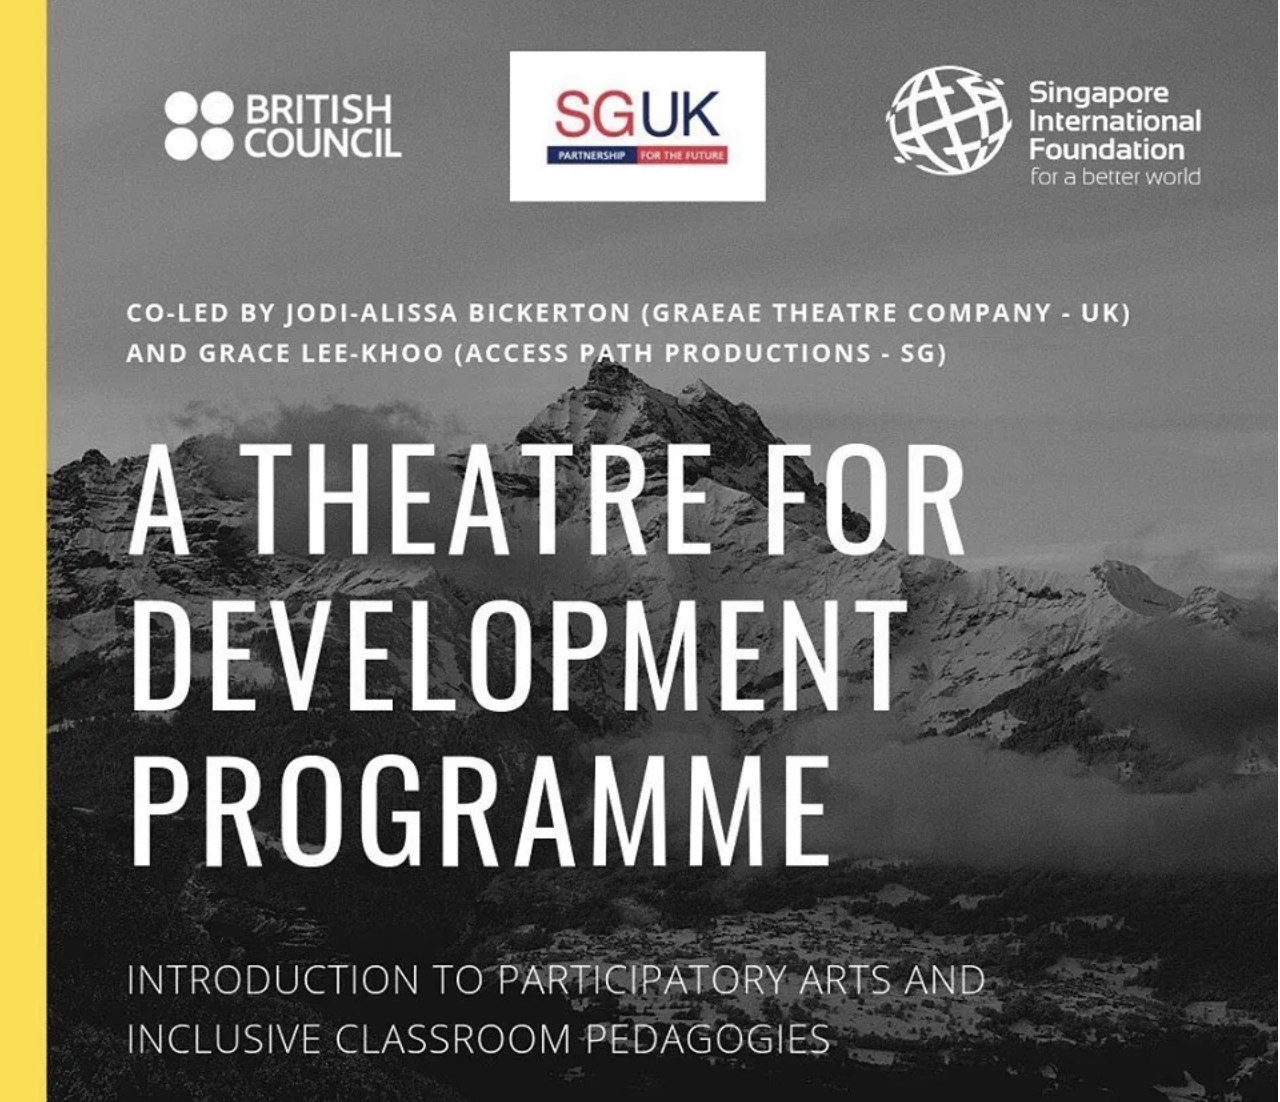 theatre-for-development-_0_72836900_1569160976 Looking for more insights or useful guides?